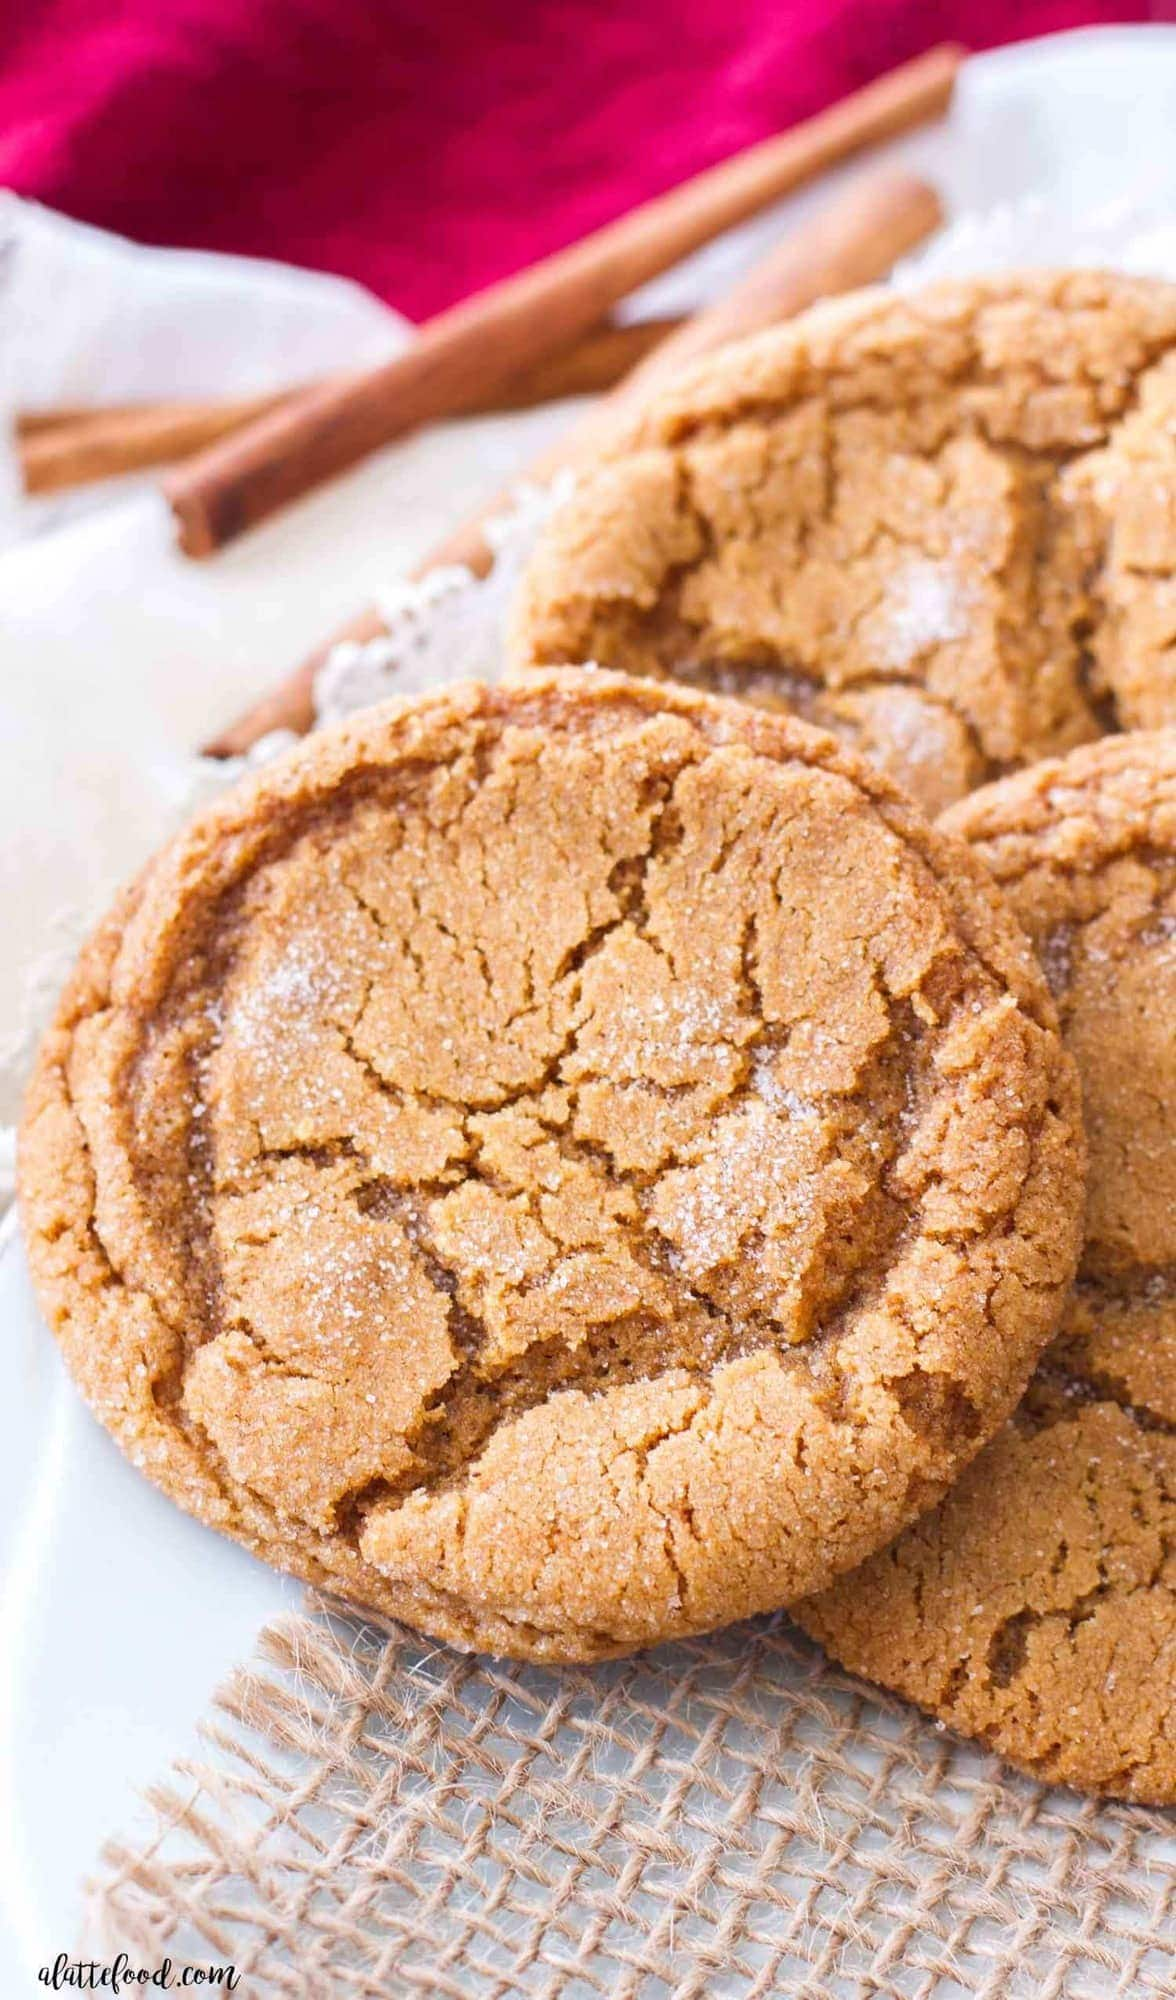 A plate of molasses cookies on a white plate.